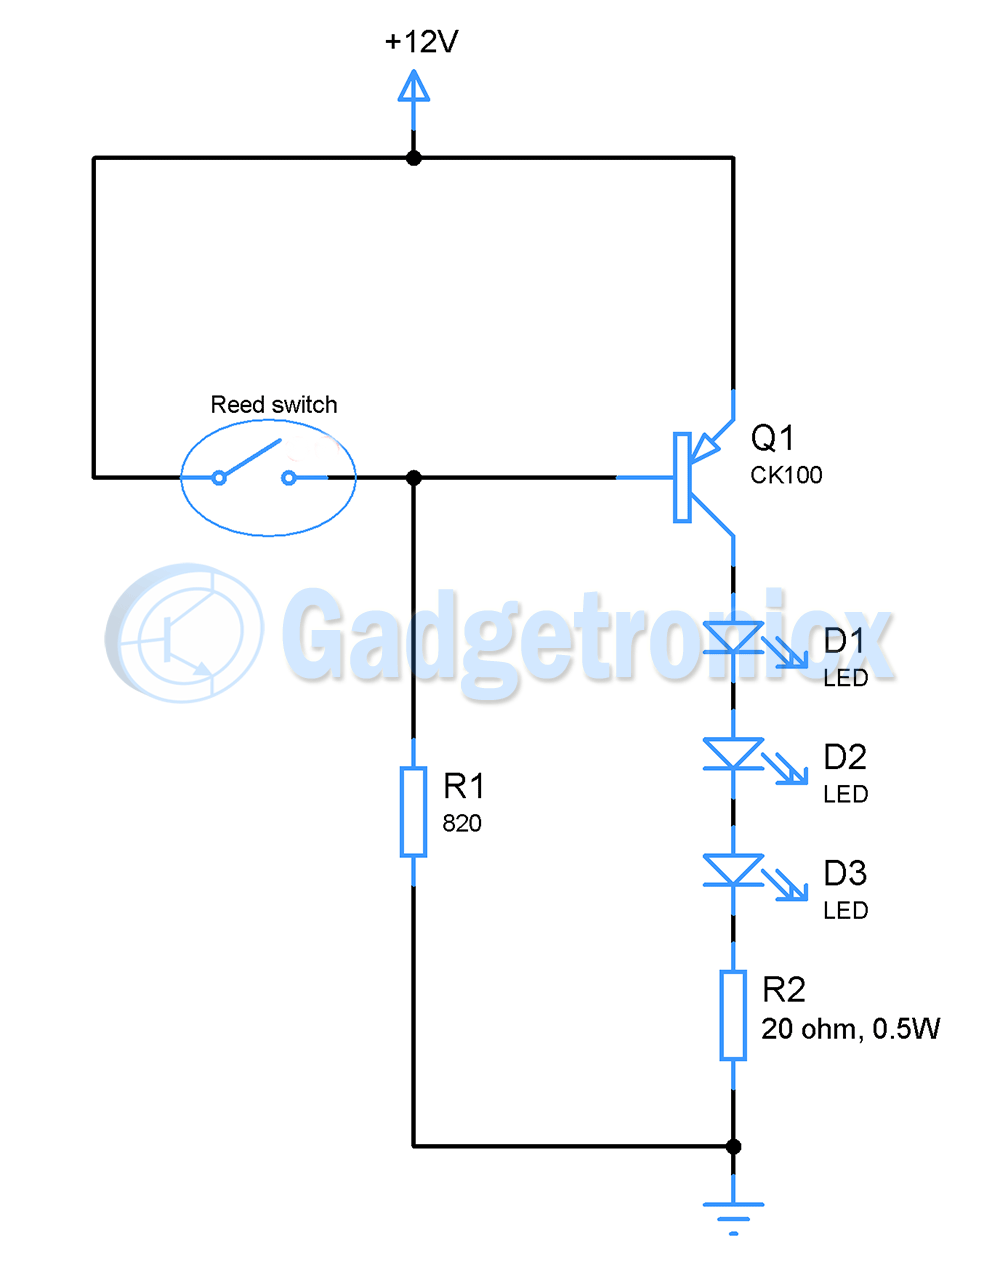 Gadgetronicx Electronics Circuit Diagrams And Embedded Programming 555 Timer Photo Alarm Cupboard Lights